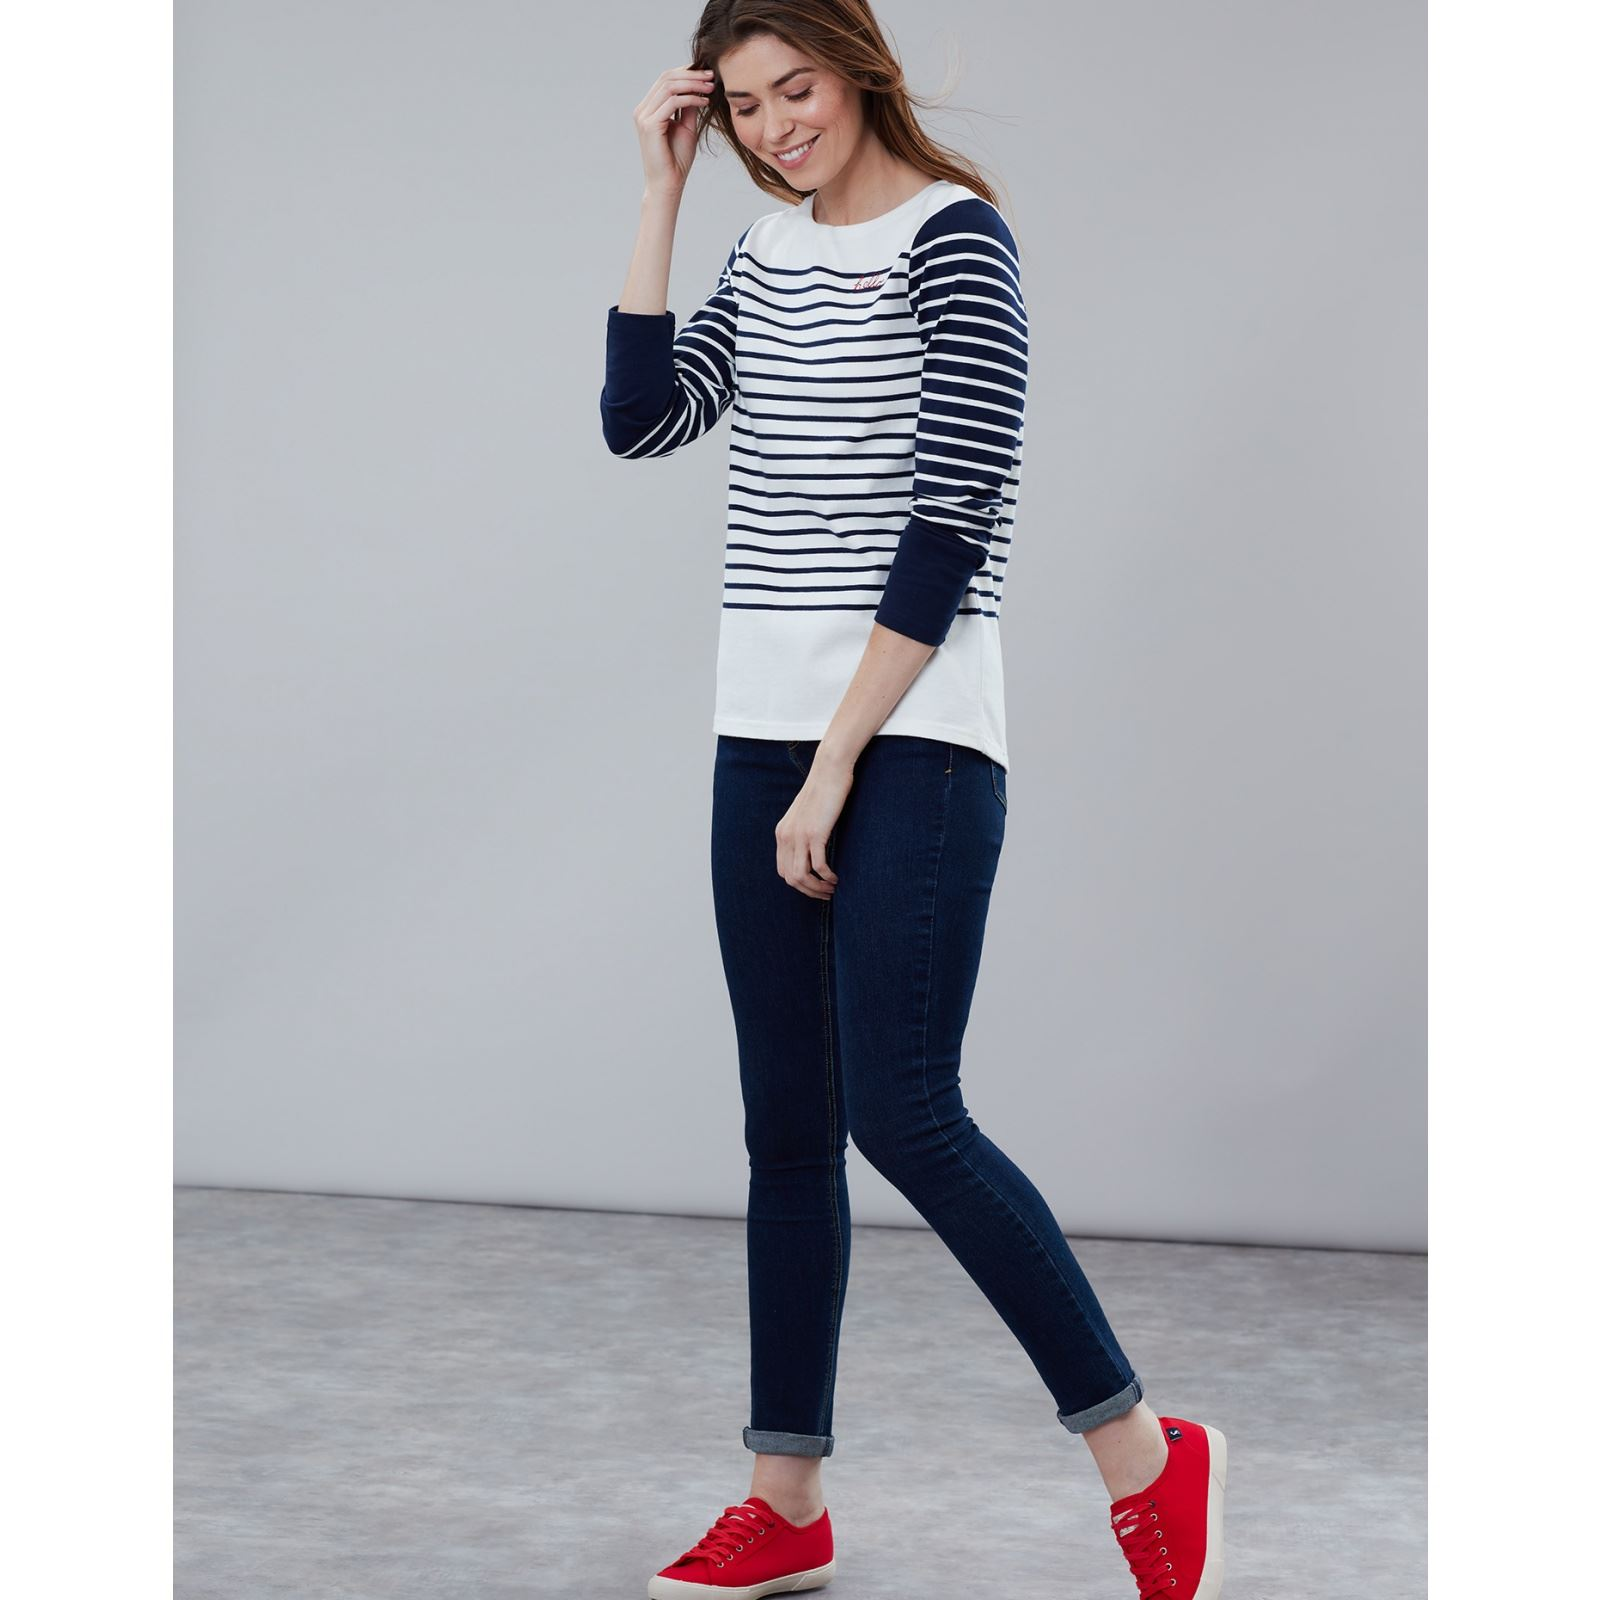 Joules-Harbour-Bordado-Manga-Larga-Jersey-Top-Mas-Colores miniatura 17